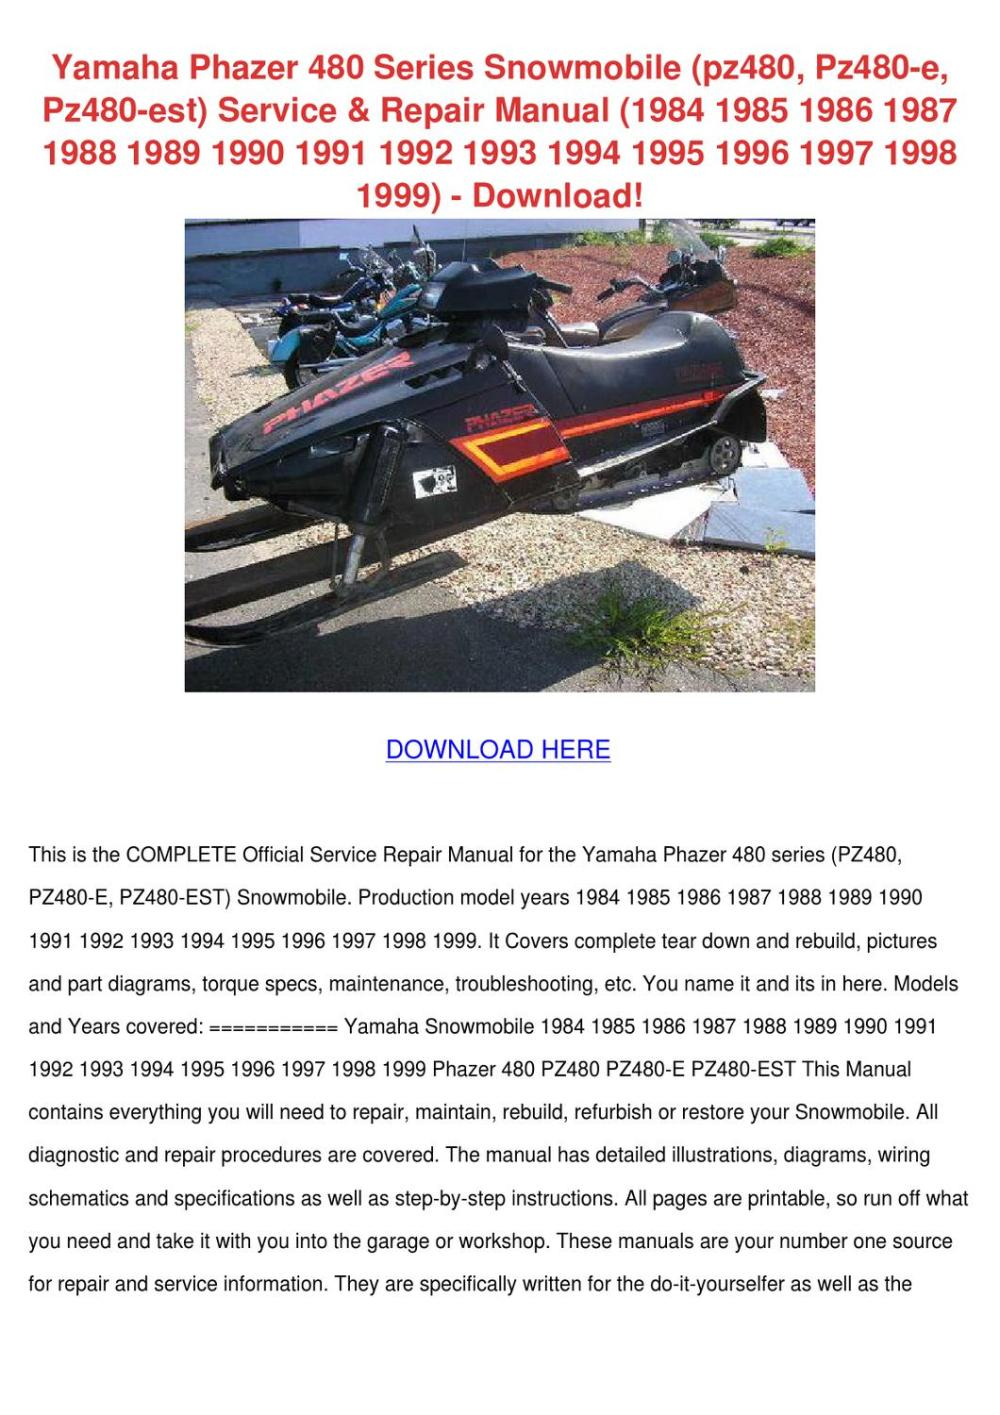 medium resolution of yamaha phazer 480 series snowmobile pz480 pz4 by mindylessard issuu